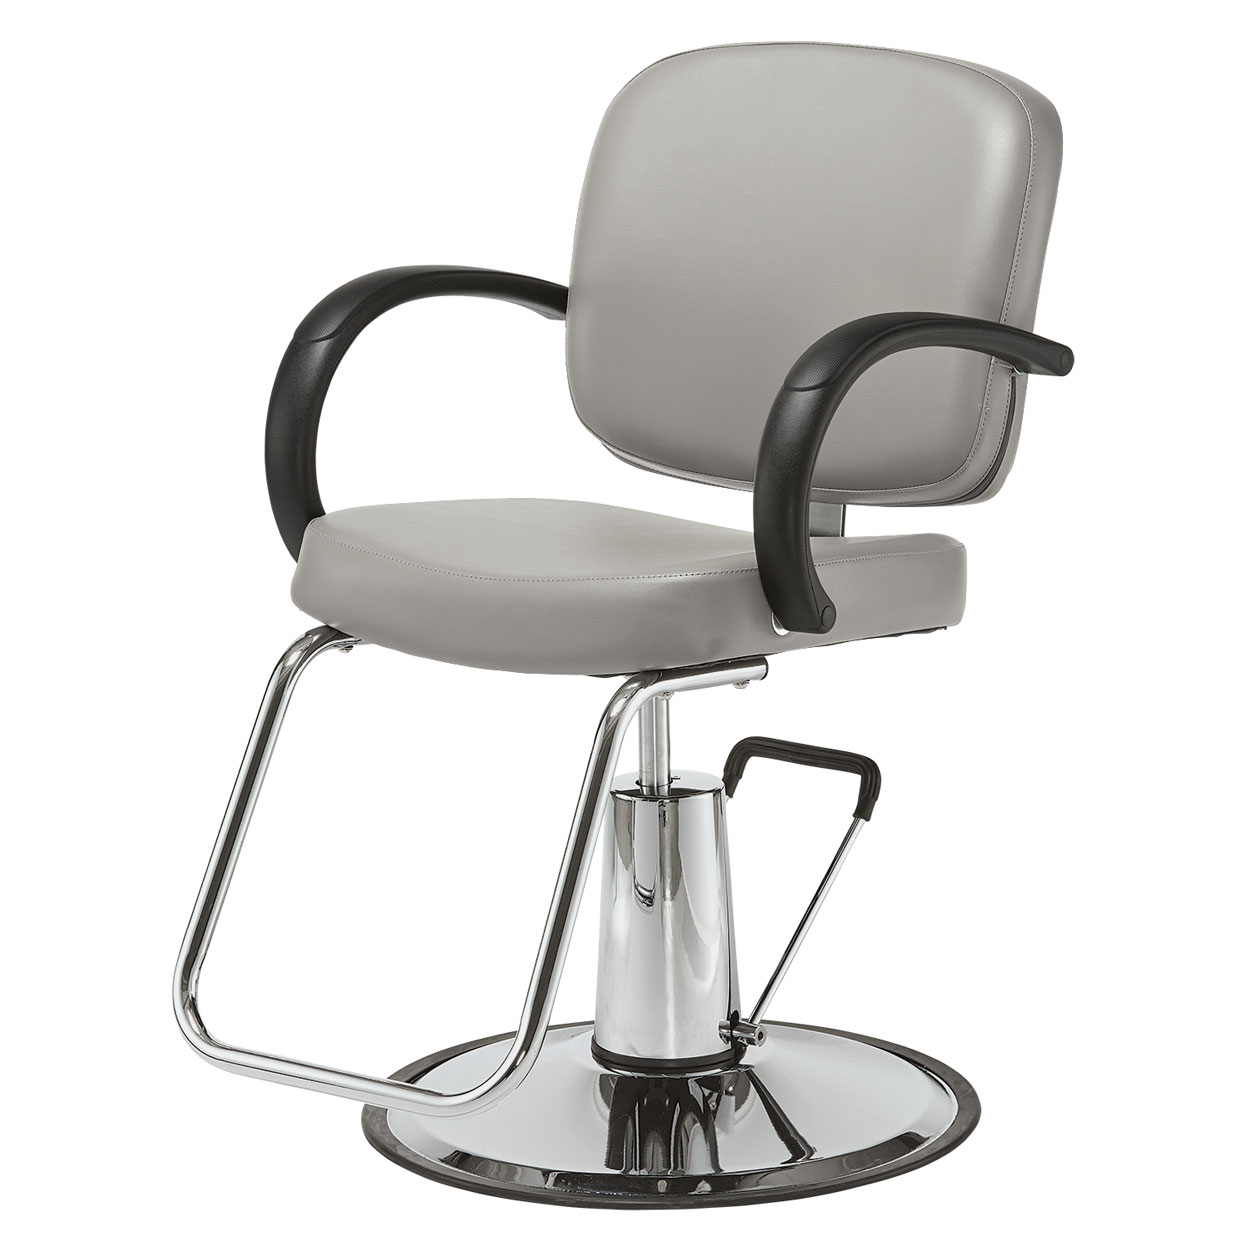 Pibbs 3606 Messina Styling Chair  main product image